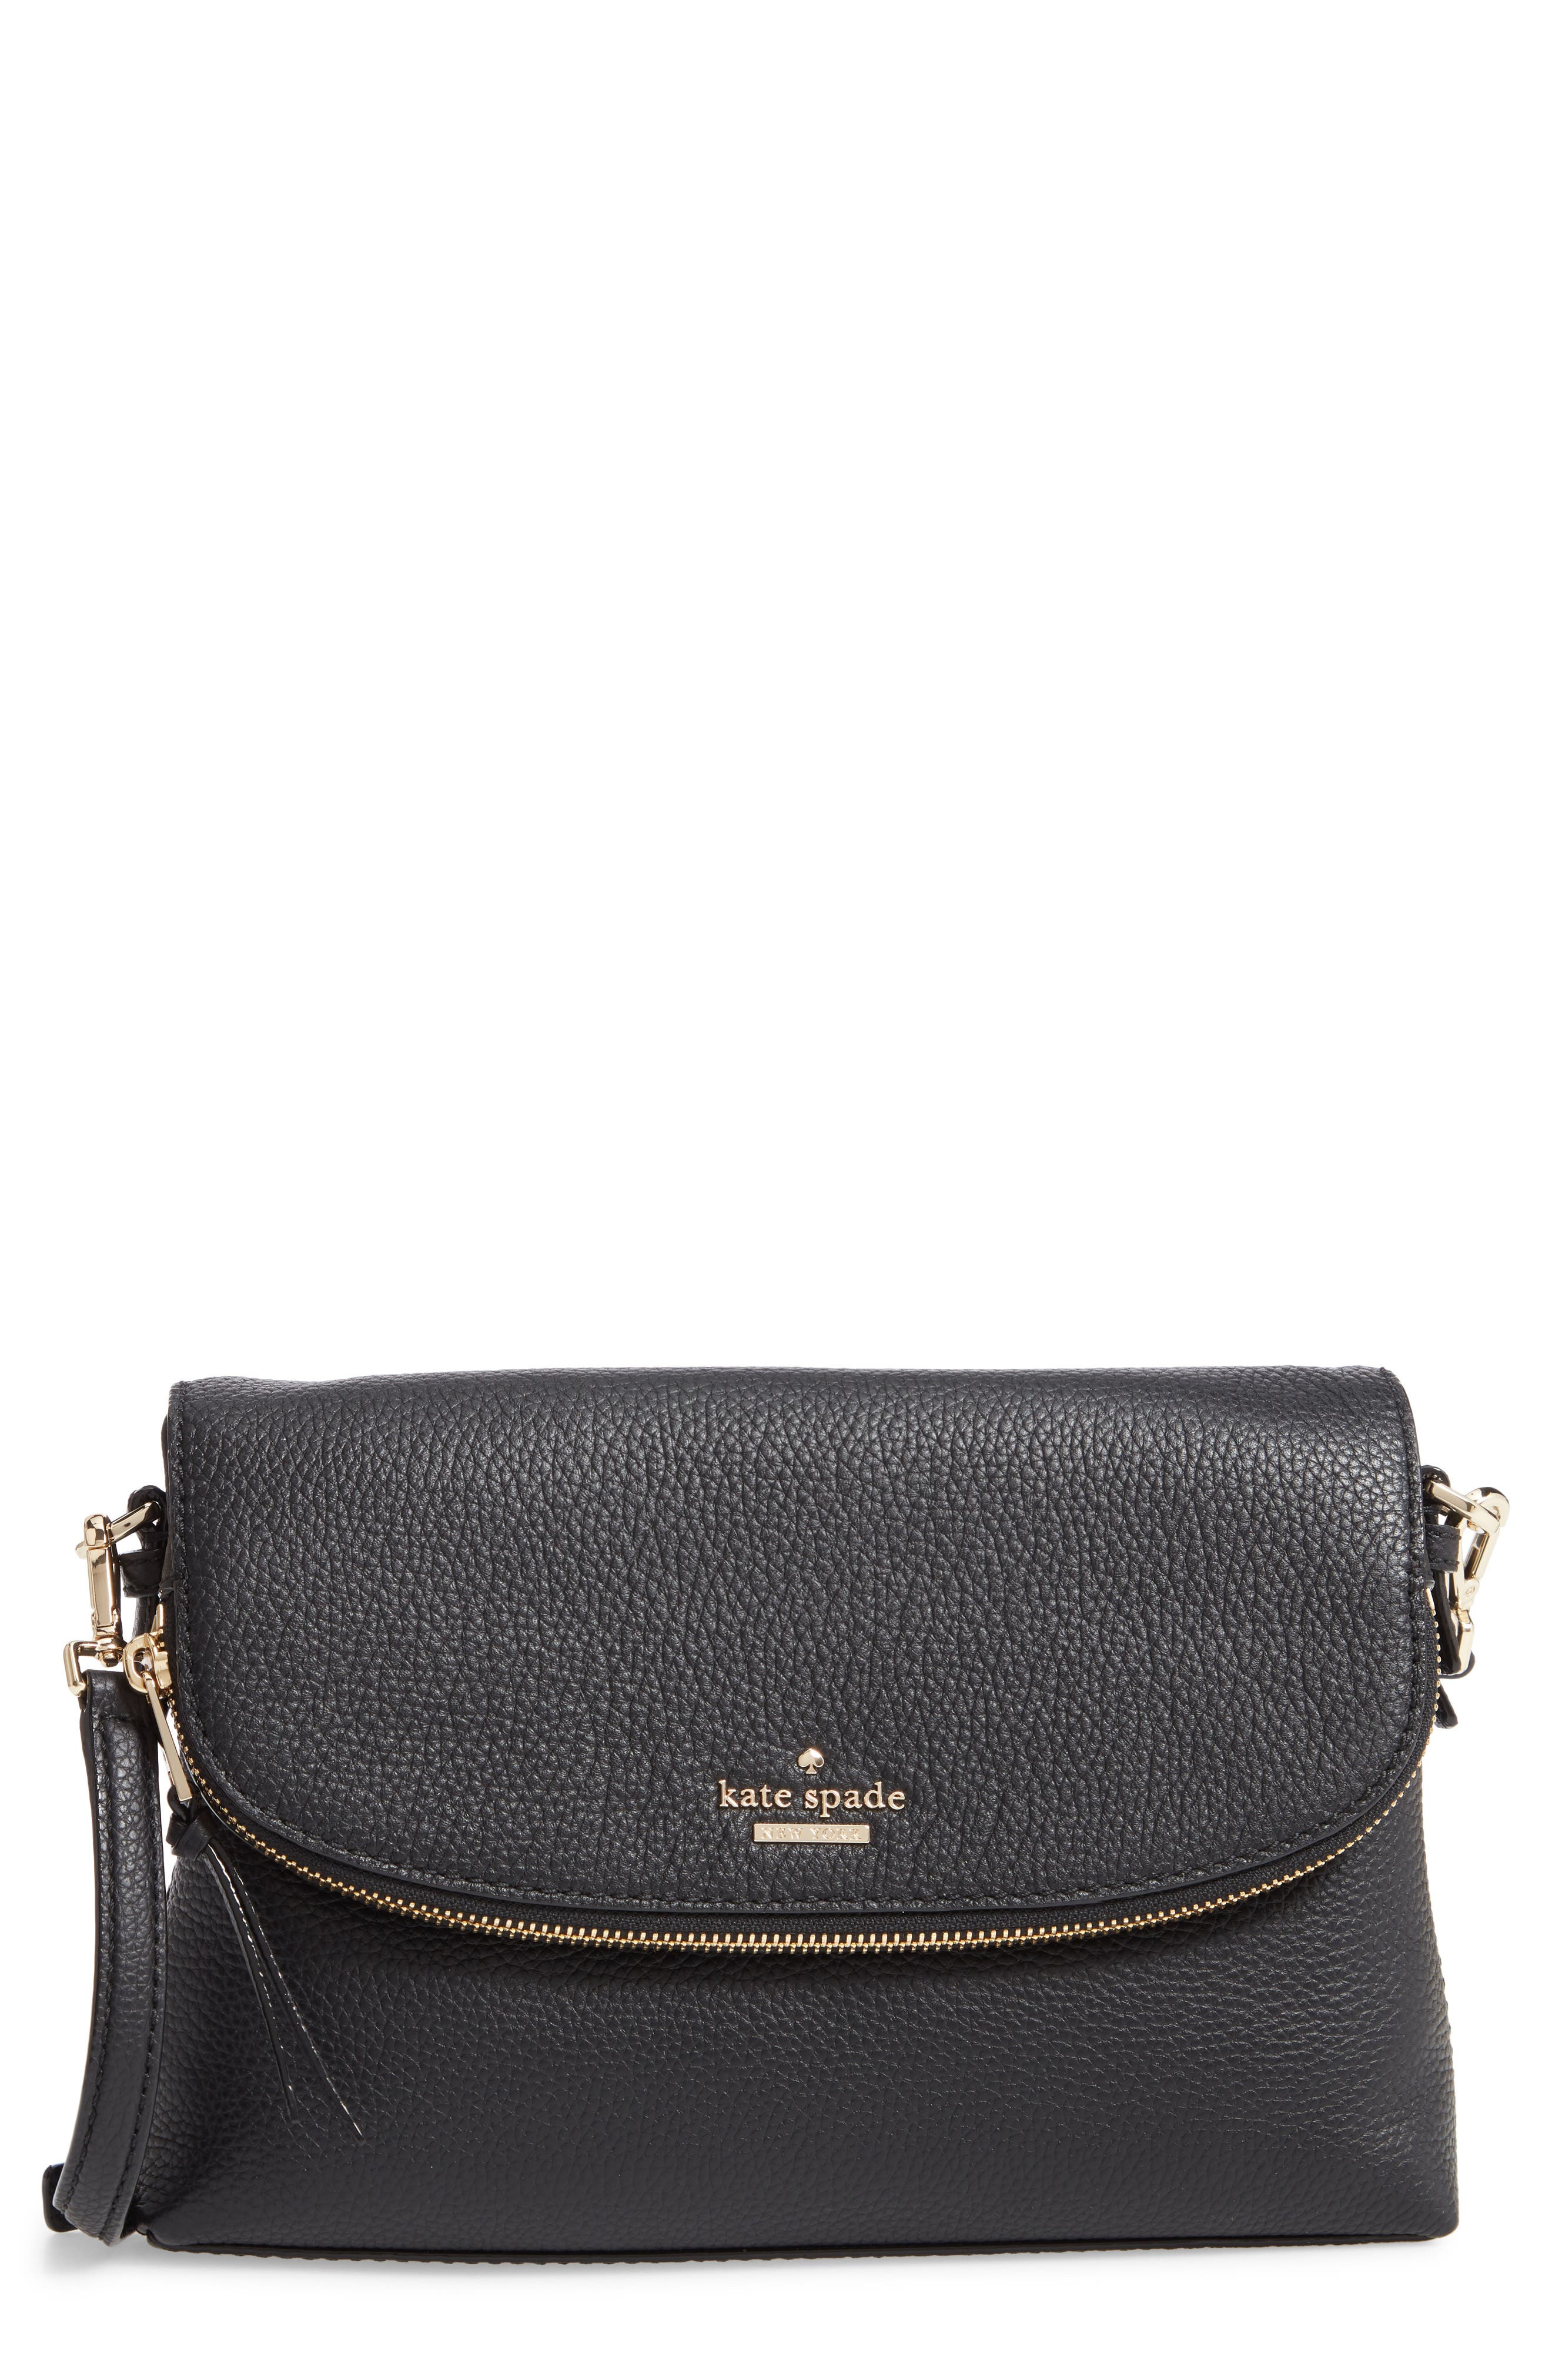 jackson street - harlyn leather crossbody bag,                         Main,                         color, BLACK